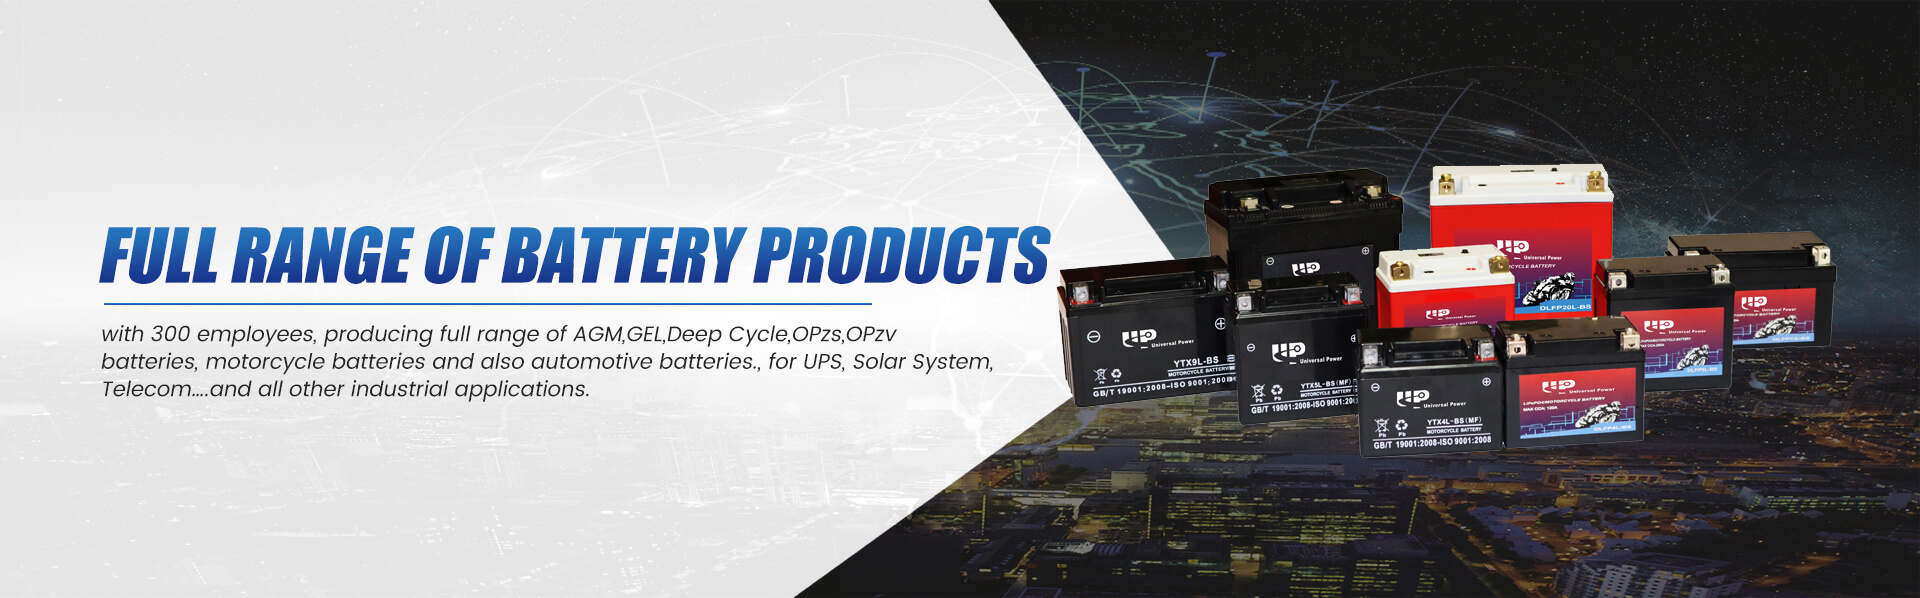 Full Range Of Battery Products Banner 0401